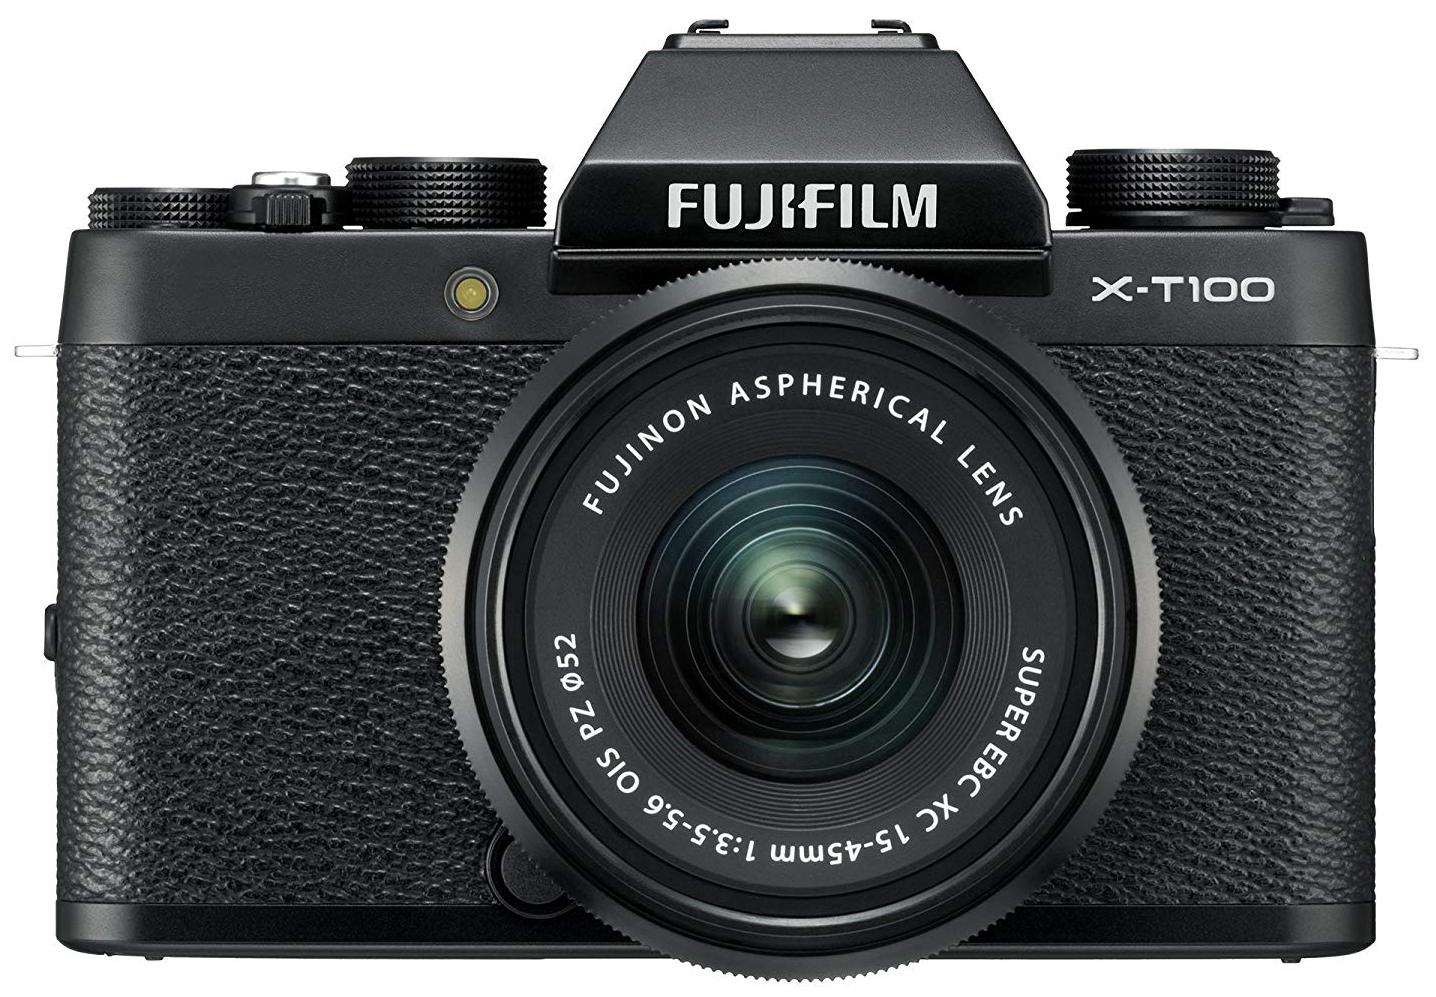 Fujifilm X-T100 (with XC 15-45 mm Lens) 24.2 MP Mirrorless Camera (Black)